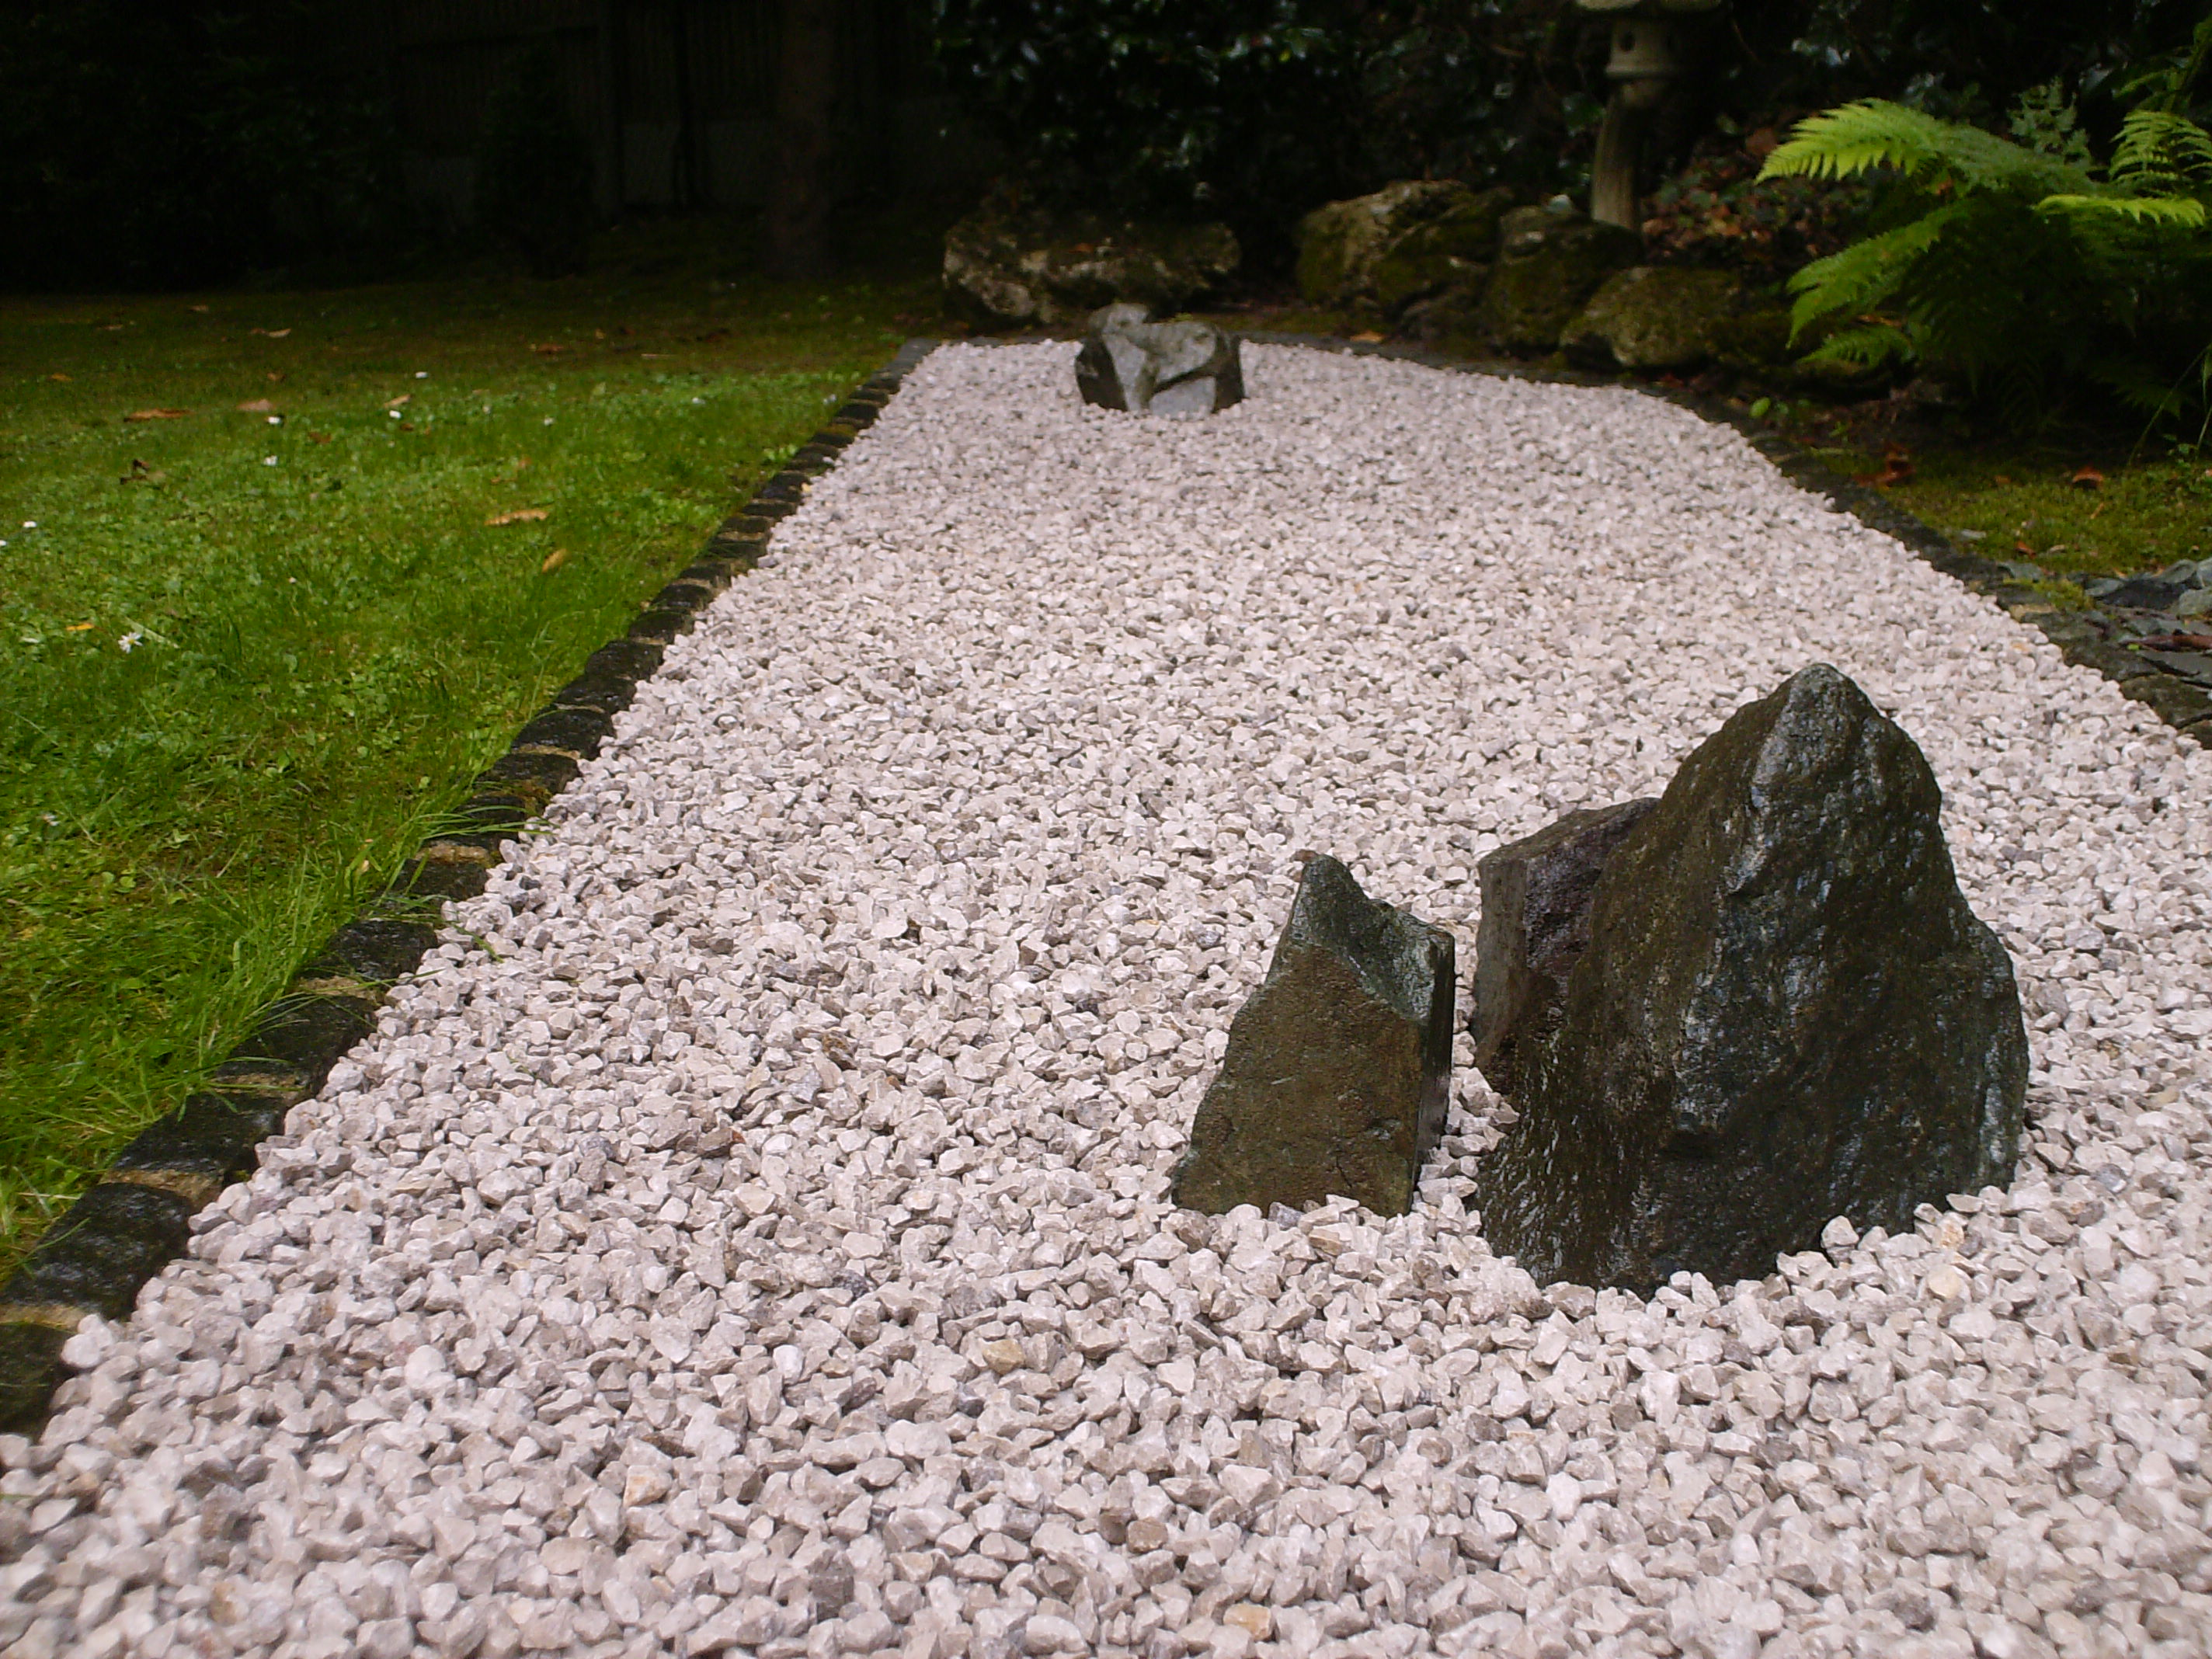 You May Not Be Interested In A Rock Garden And Have A Dream Of A More  Complicated Japanese Garden. Japanese Gardens Are At One With Nature And  Should Always ...